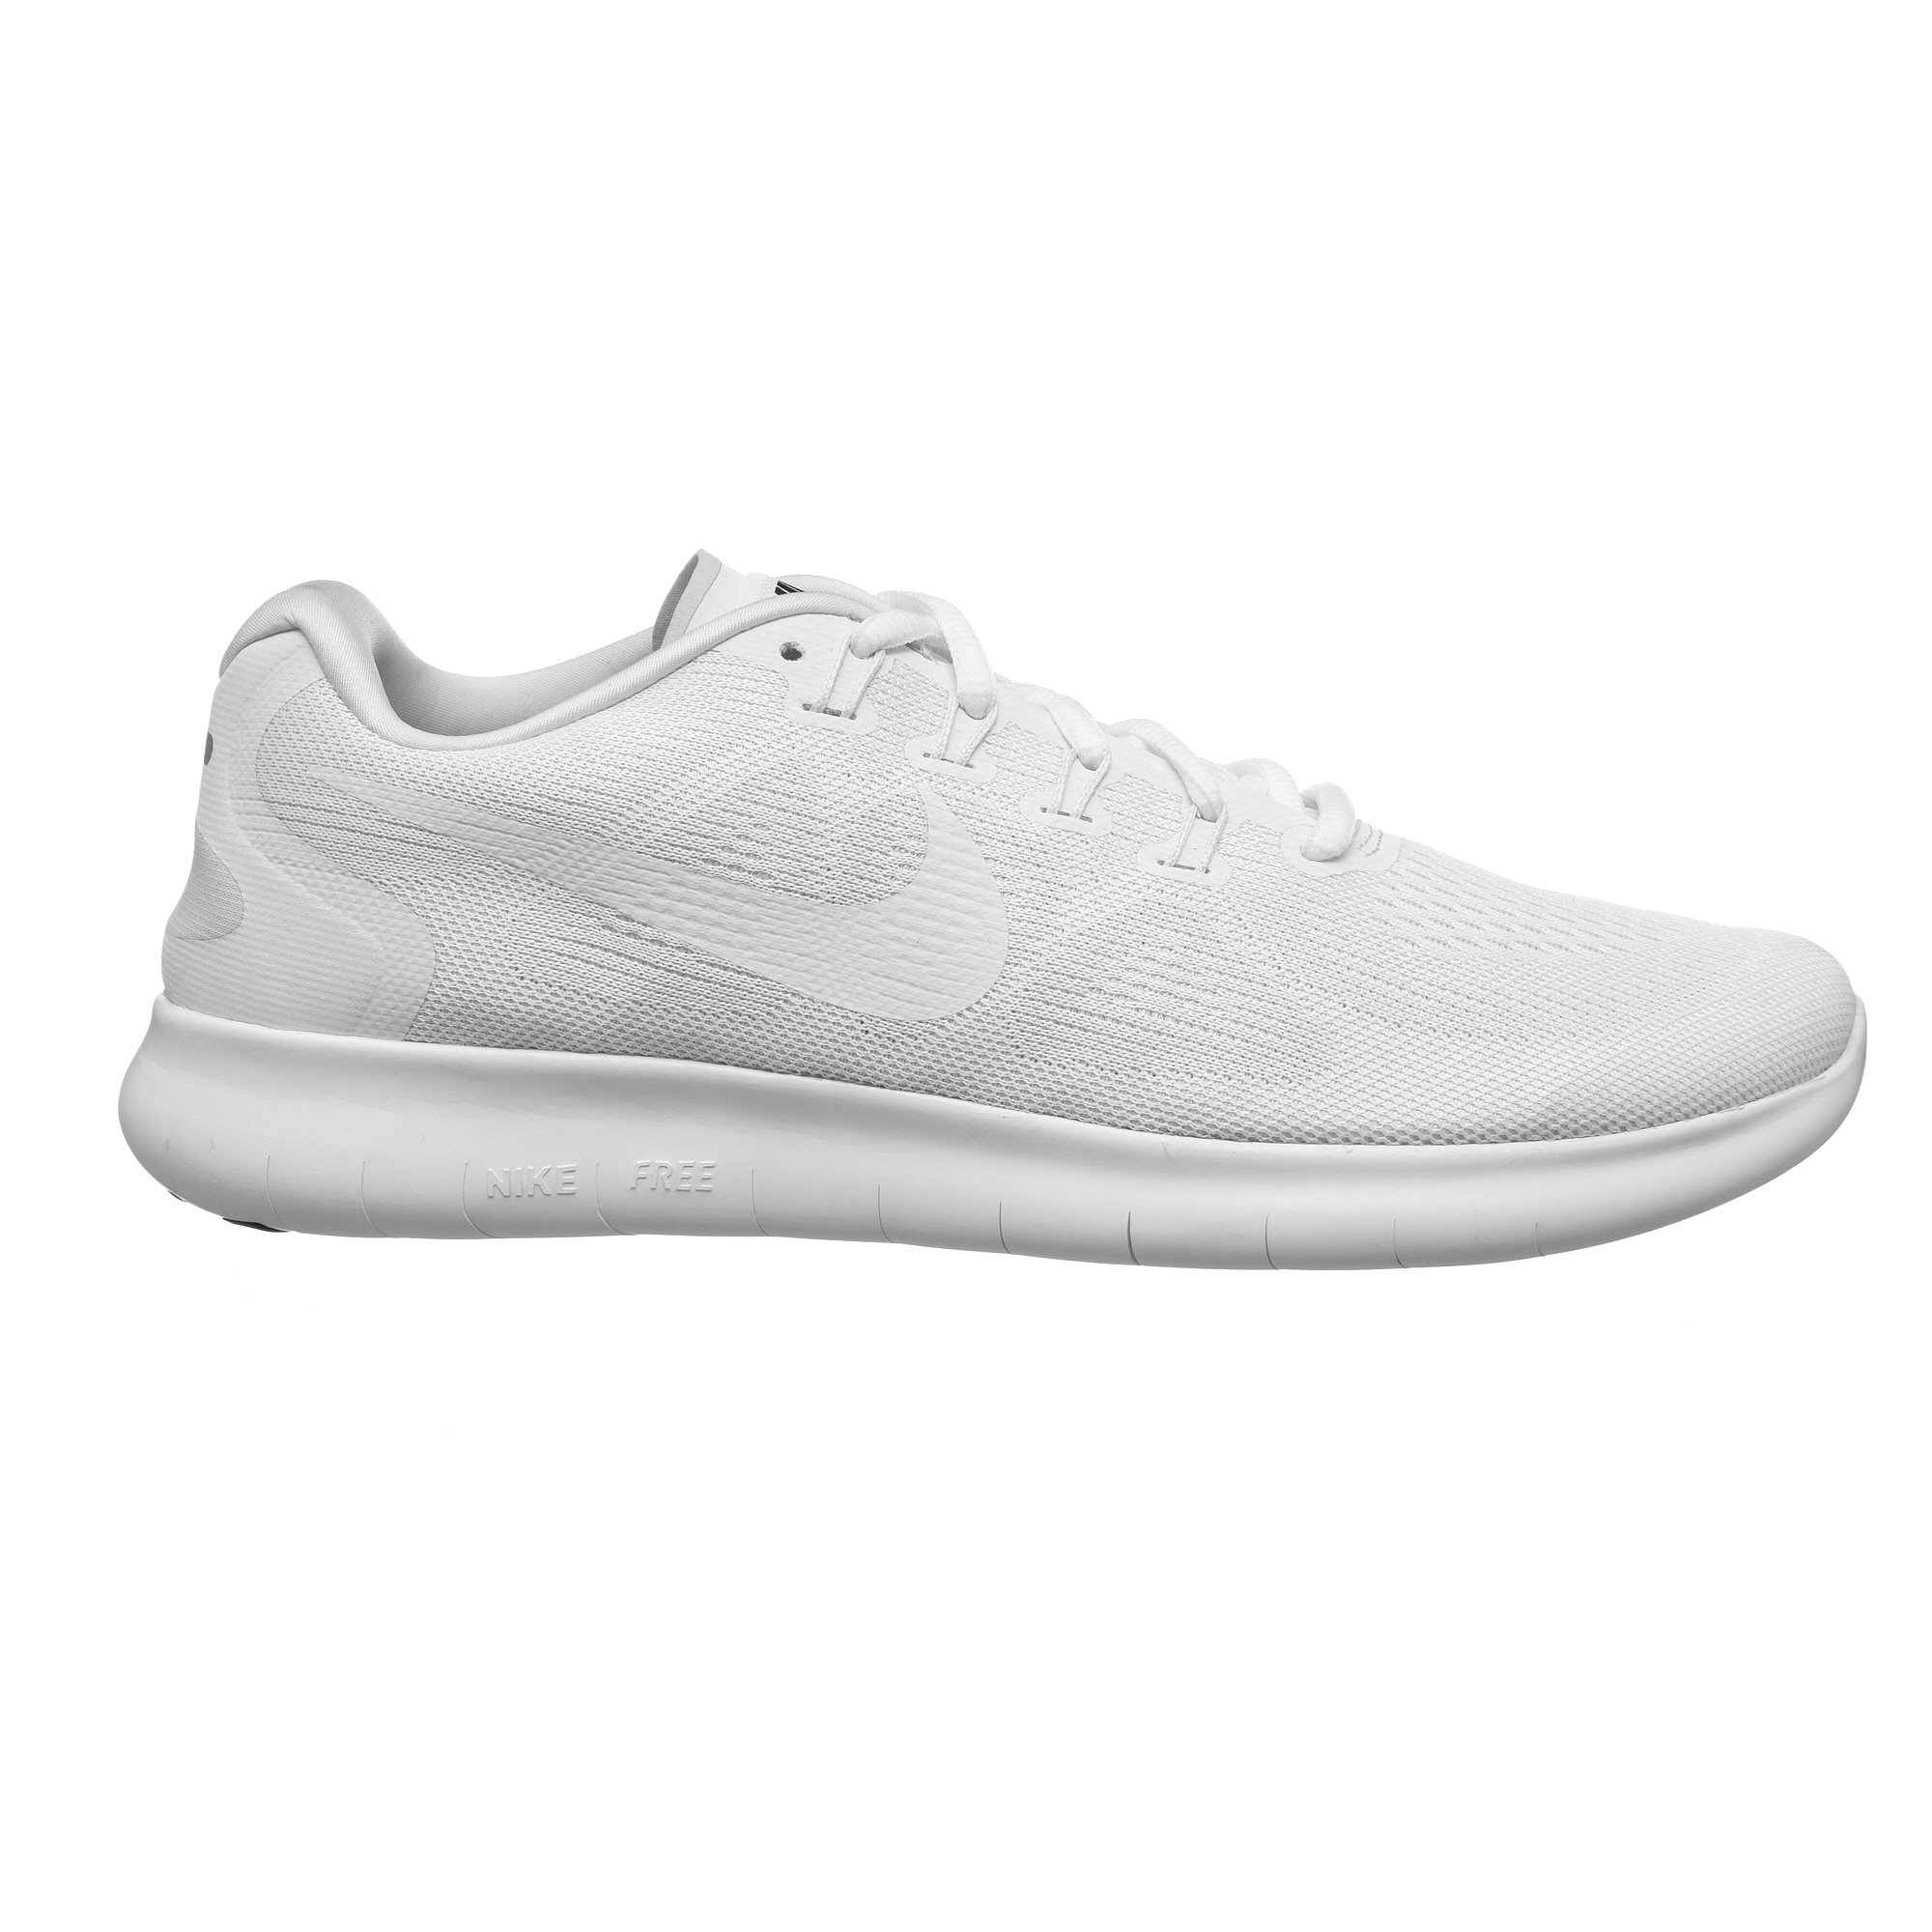 buy online d4e8d 109e1 Nike Free Run Shoes